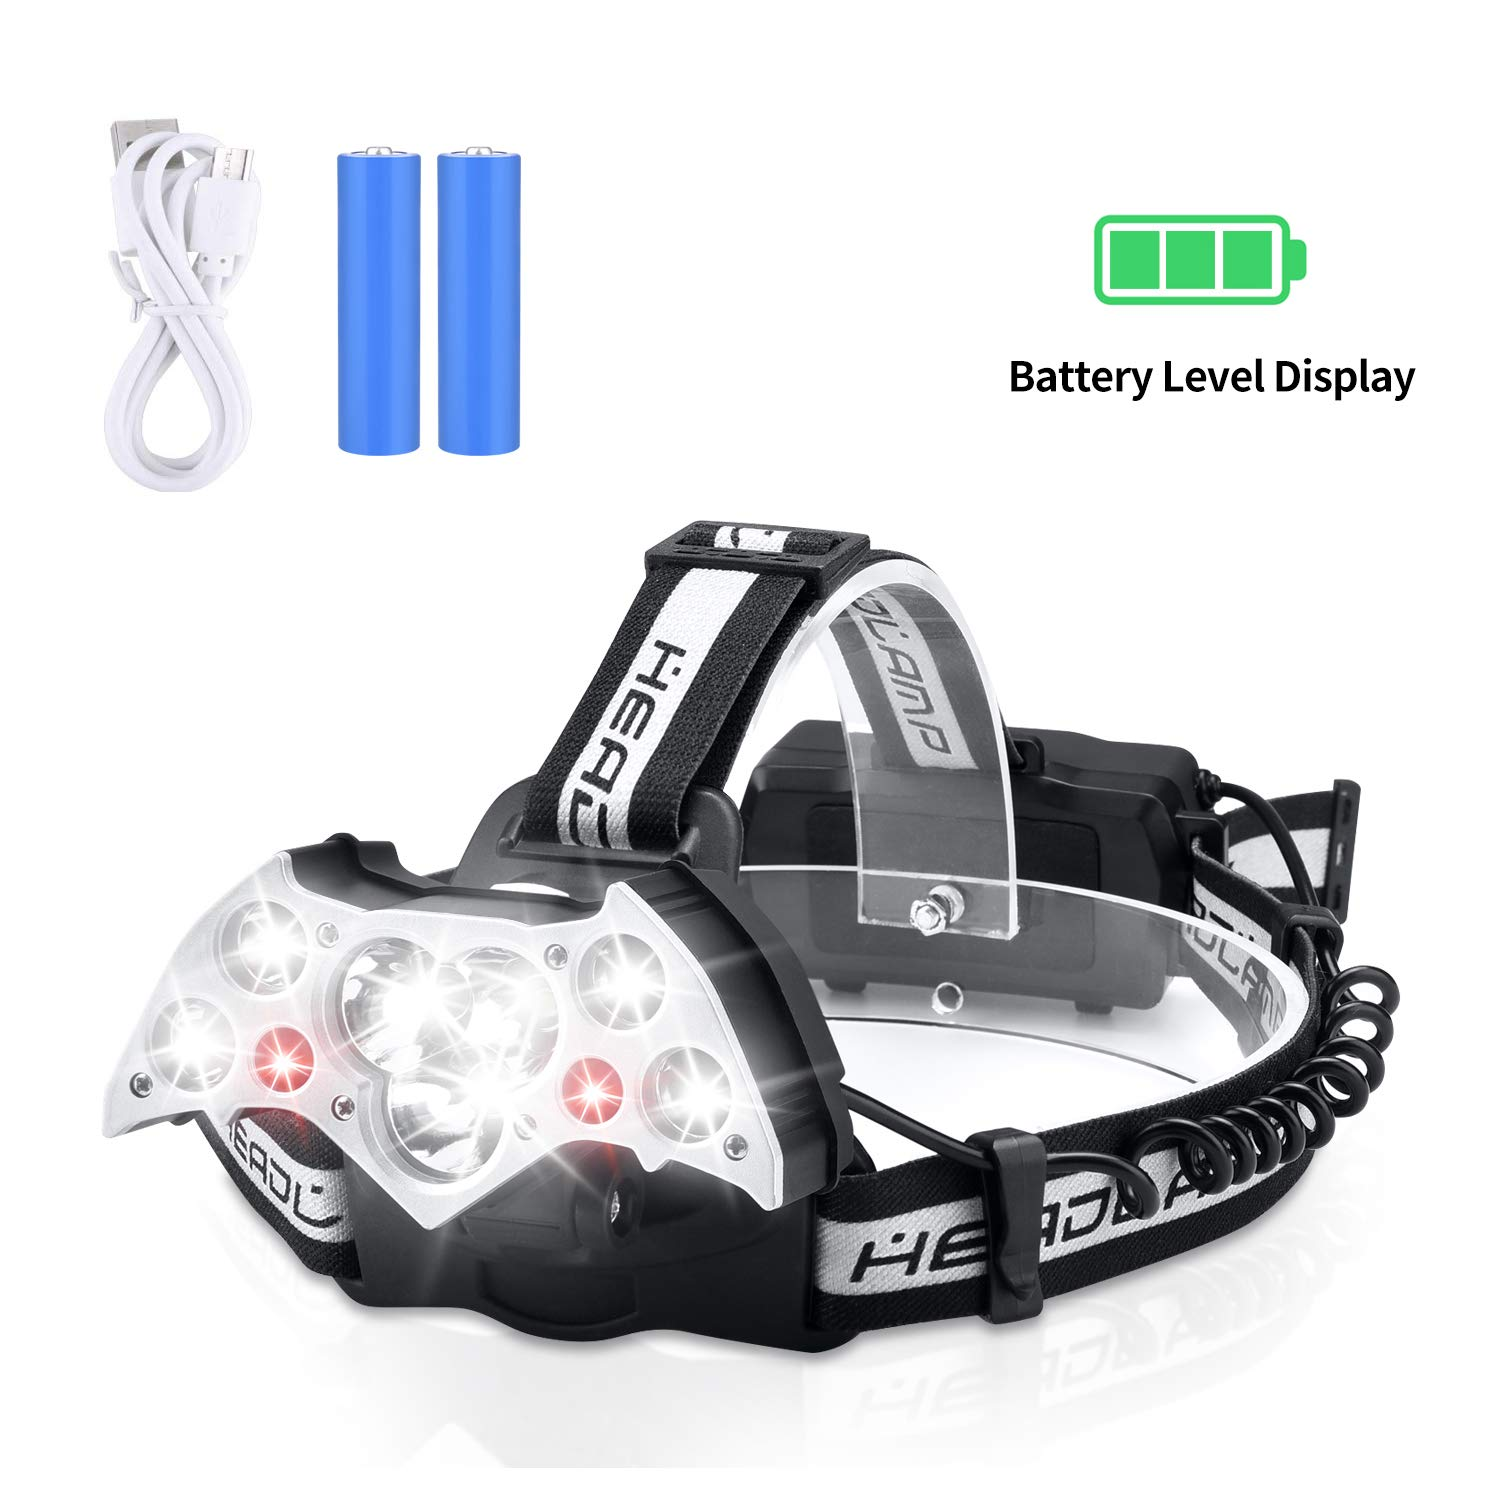 Headlamp, YCTEC 12000 Lumen Brightest 9 LED Headlamp with White Red Lights, Battery Level Display, Waterproof USB Rechargeable Headlamp with 6 Modes for Running Camping Walking Cycling Fishing Hunting